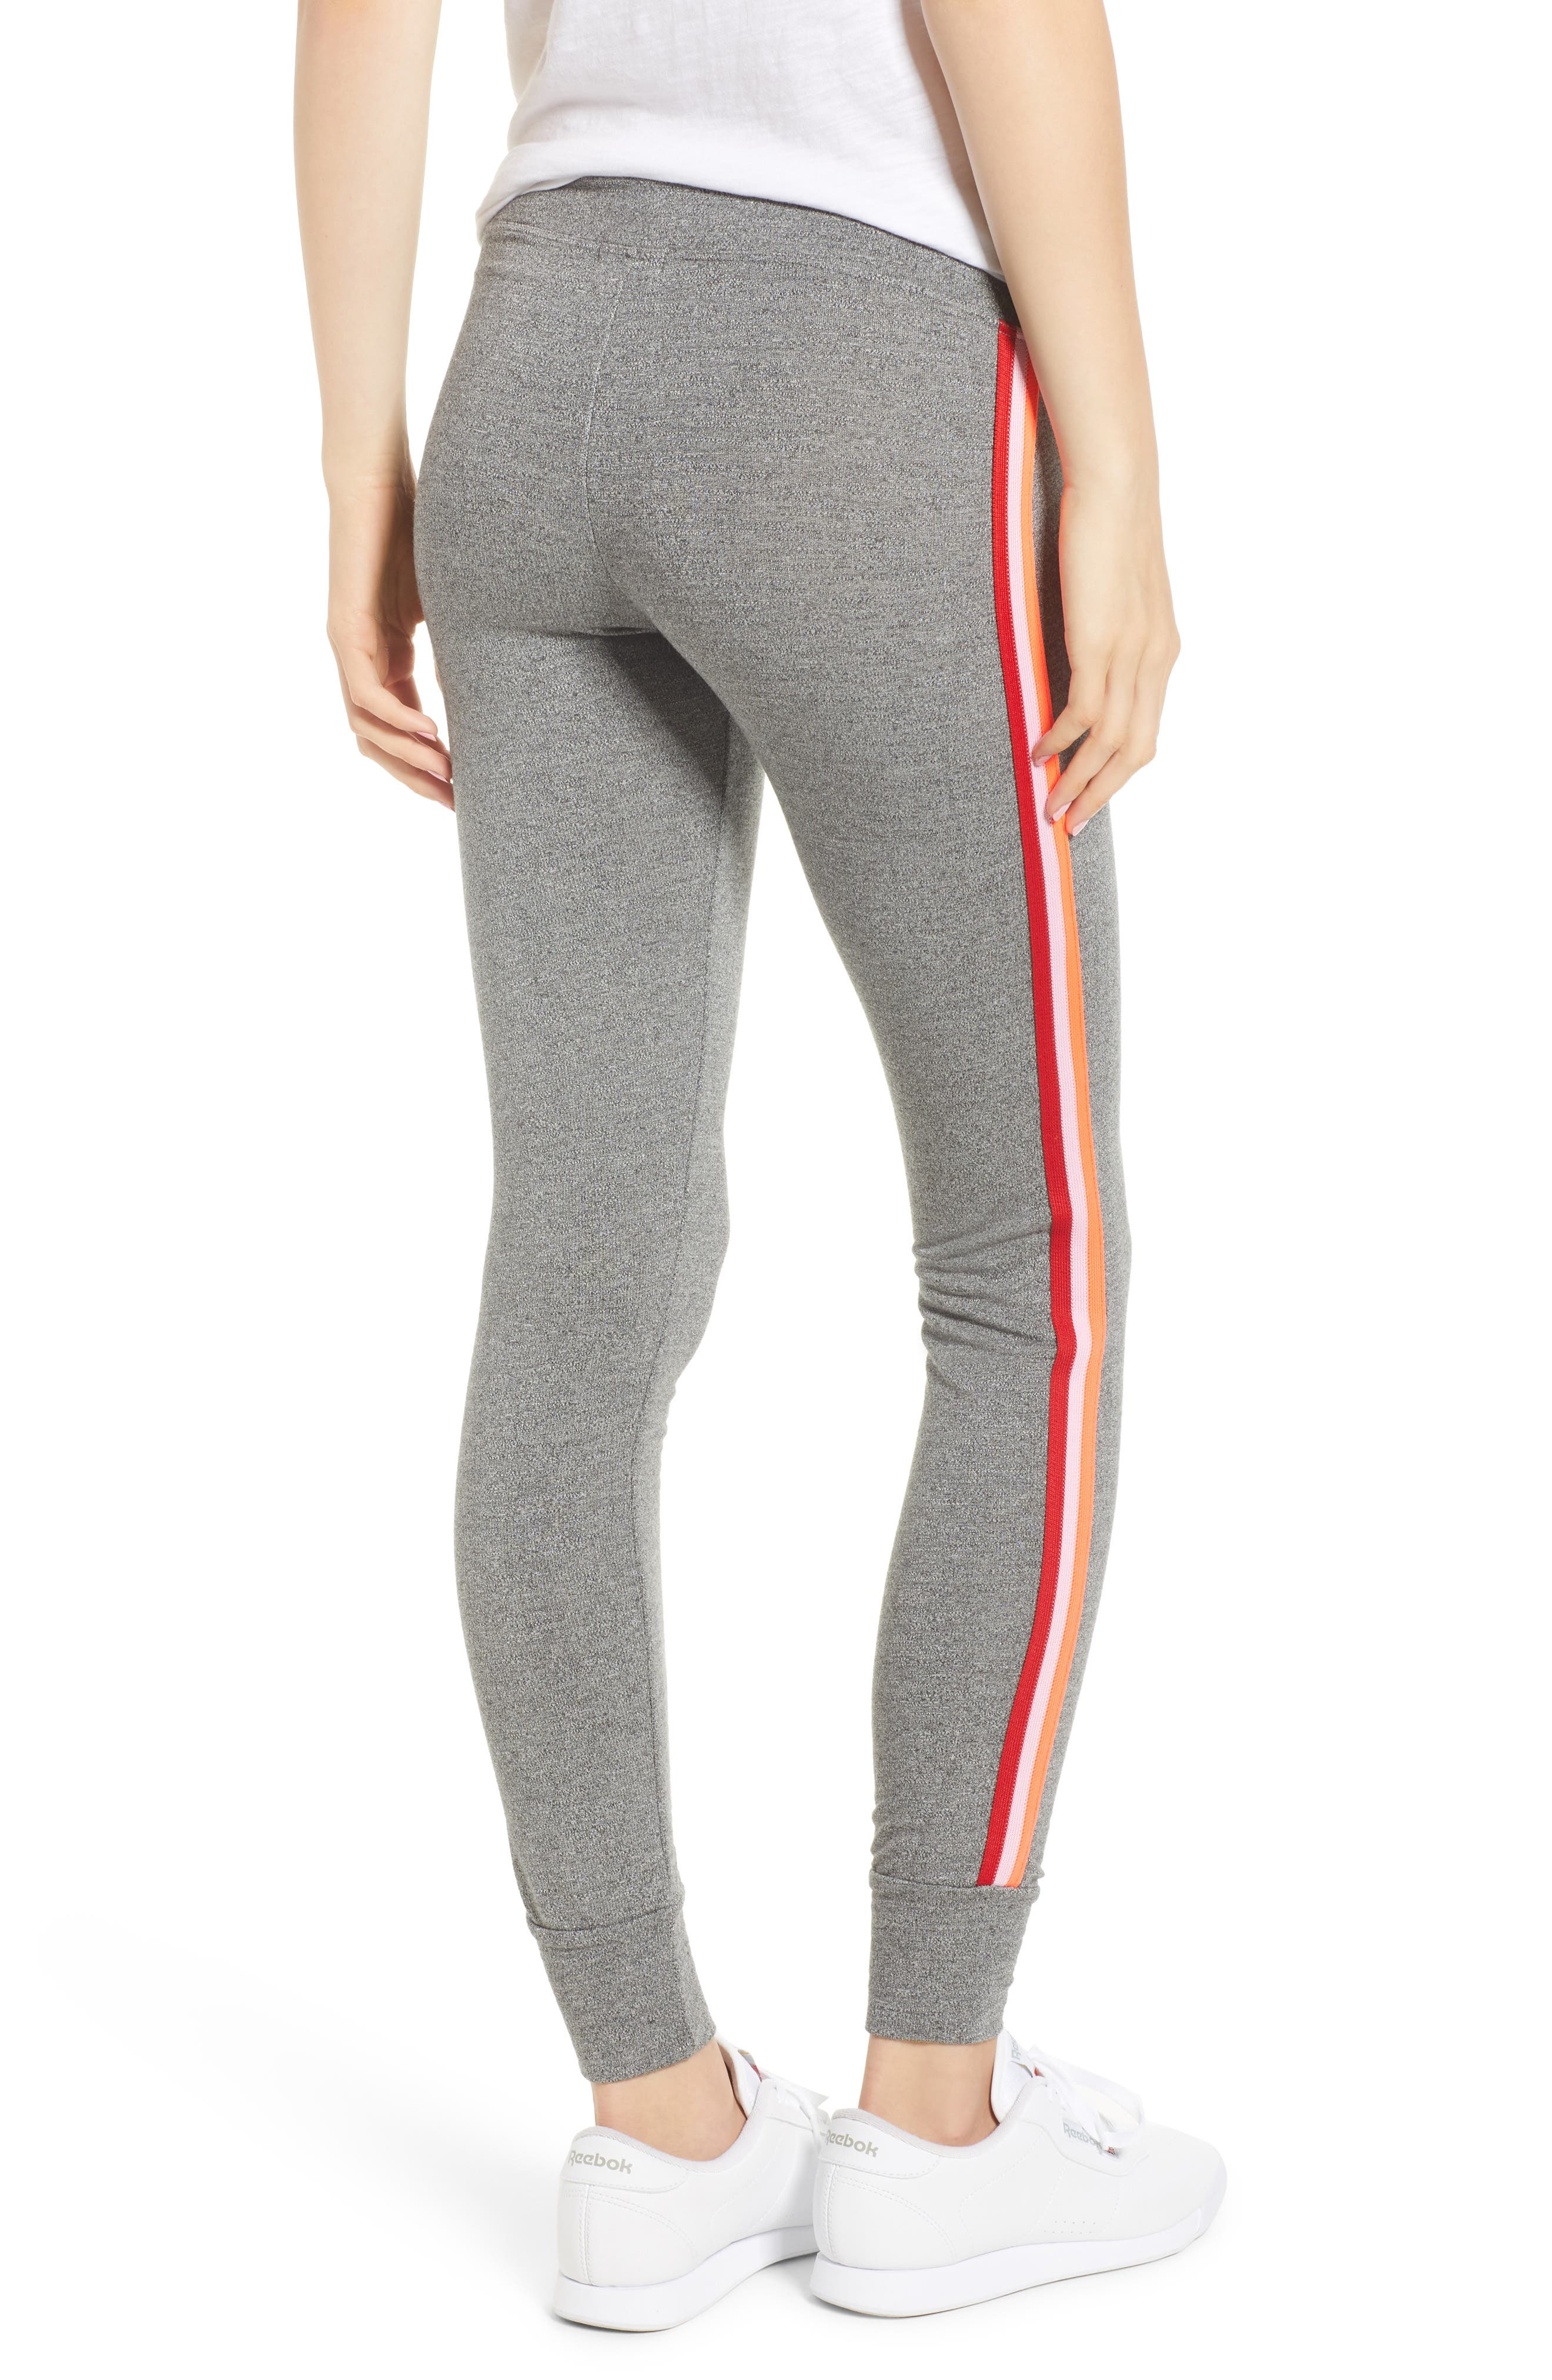 SUNDRY,                             Lace-Up Skinny Sweatpants,                             Alternate thumbnail 2, color,                             039